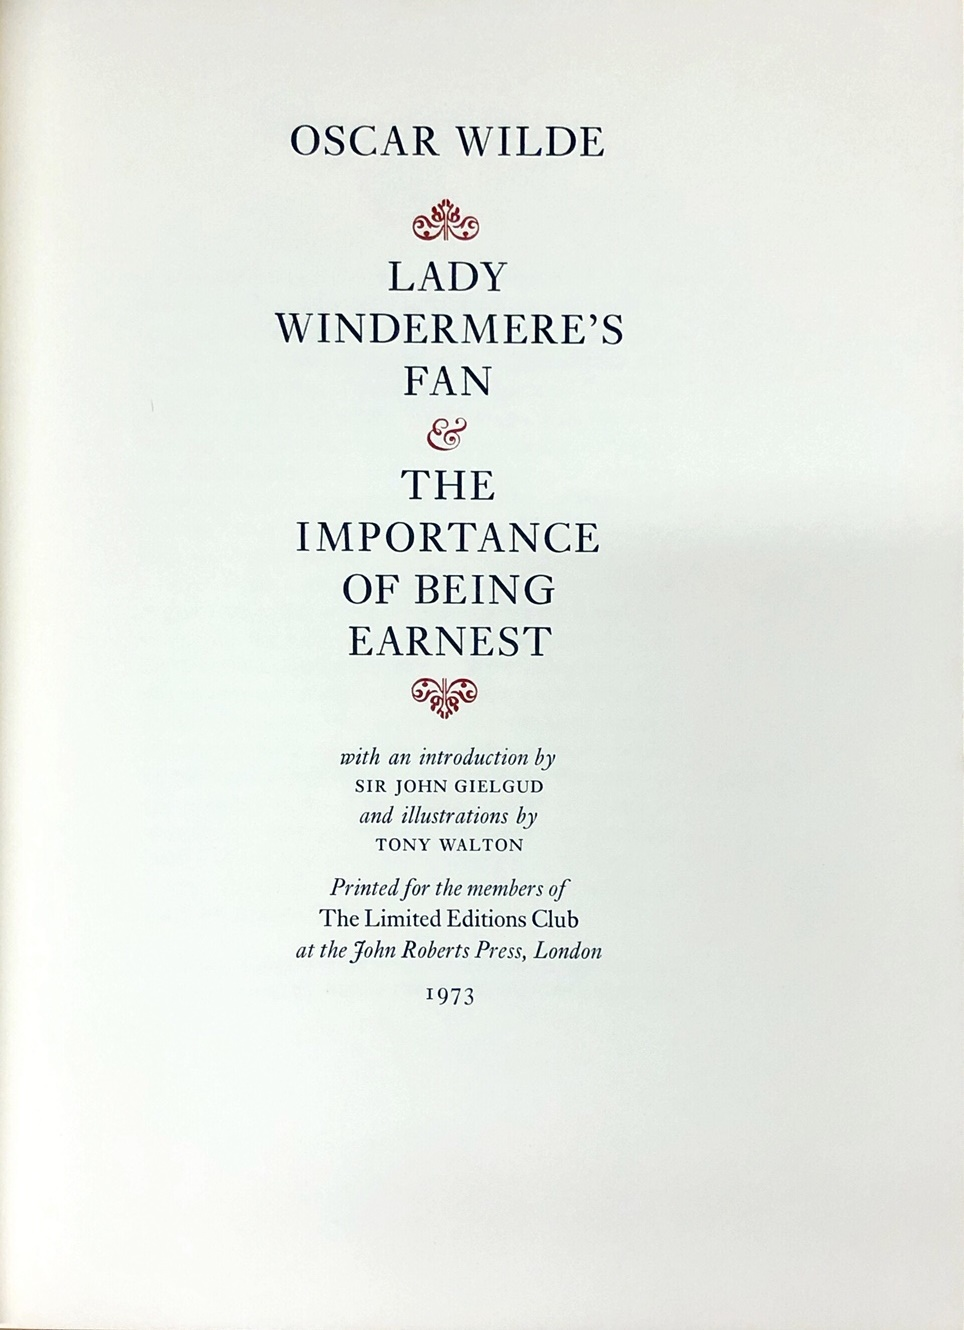 Lot 54 - Limited Editions Club Publications Wilde (Oscar) Lady Windermere's Fan & The Importance of Being